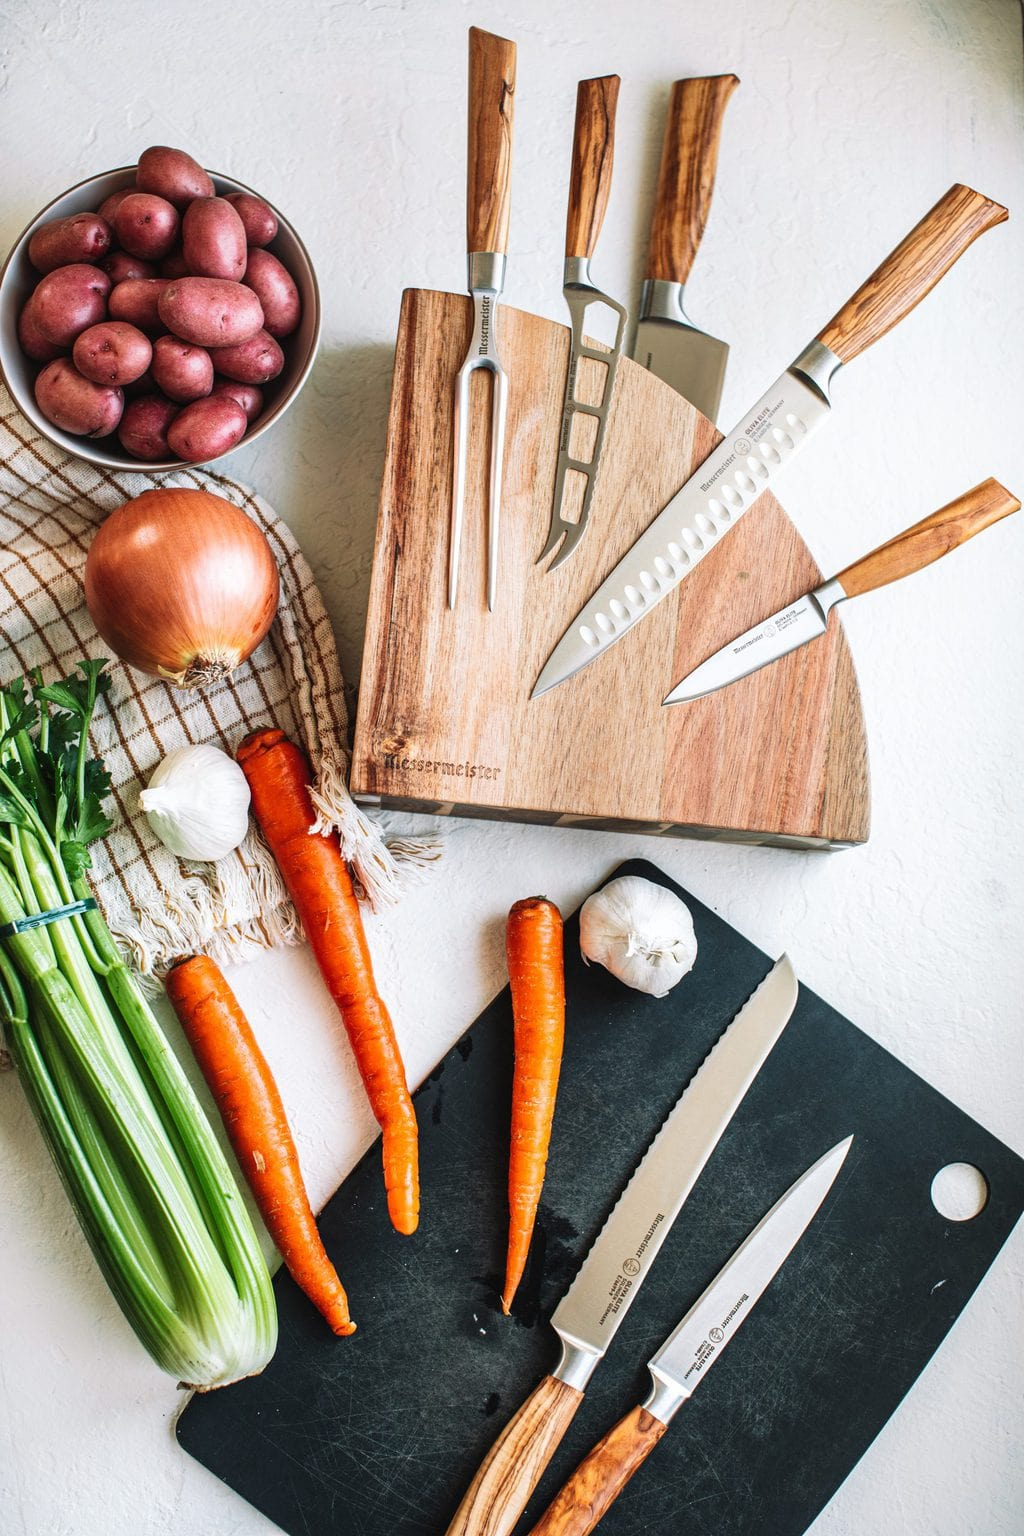 top shot of pot roast ingredients and cooking knives on white countertop